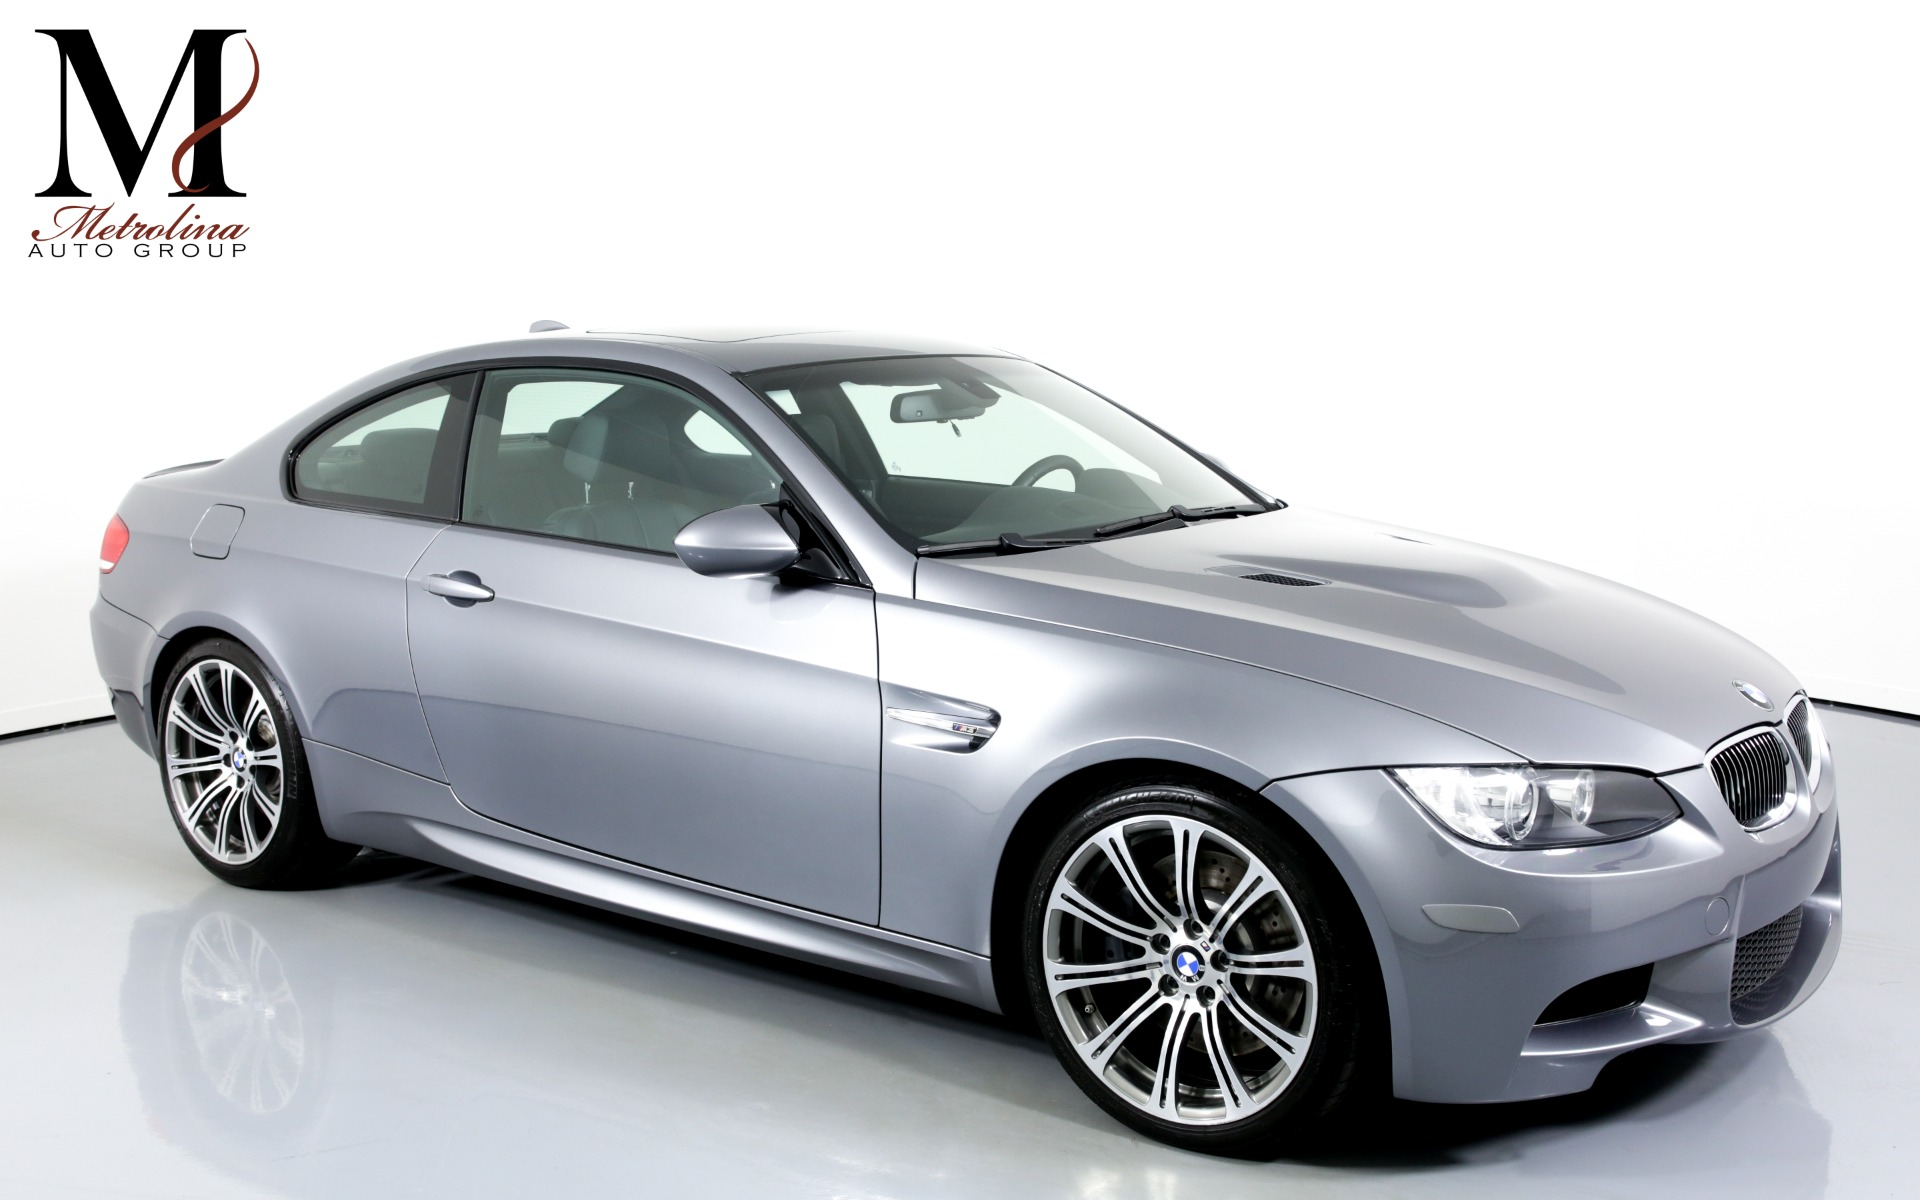 Used 2009 BMW M3 Base 2dr Coupe for sale $29,996 at Metrolina Auto Group in Charlotte NC 28217 - 1